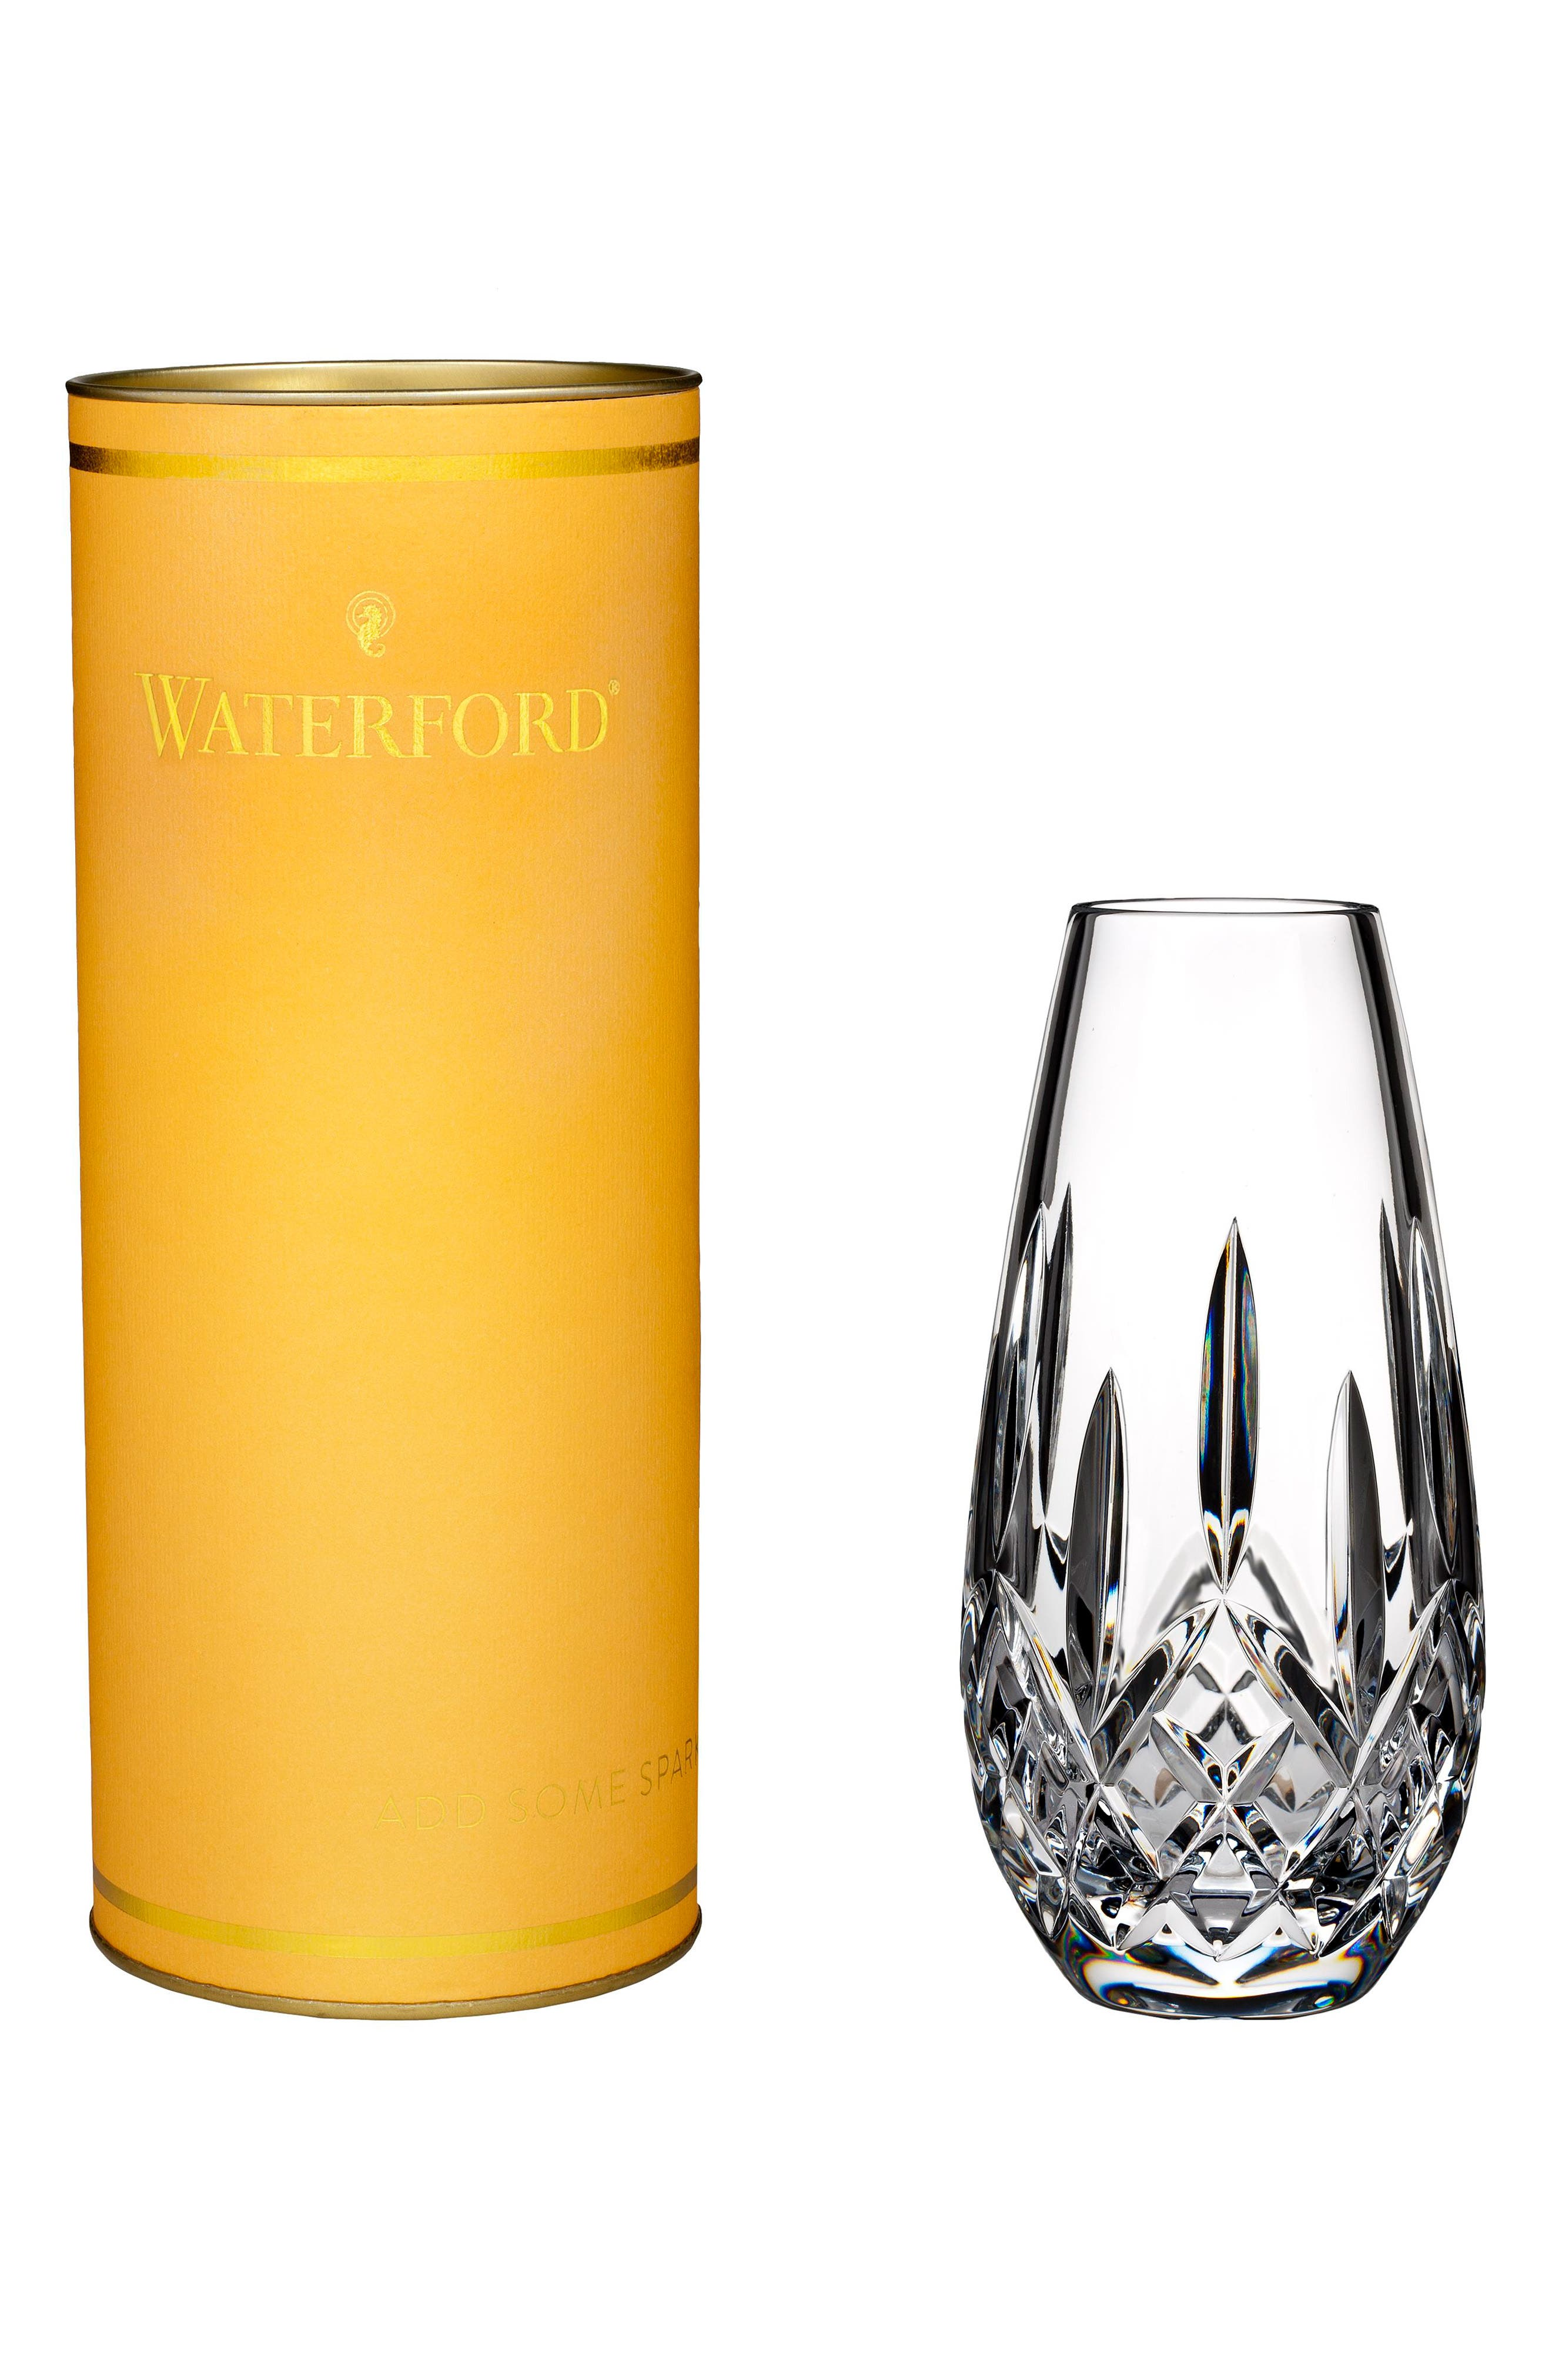 Alternate Image 1 Selected - Waterford Giftology Lismore Honey Lead Crystal Bud Vase